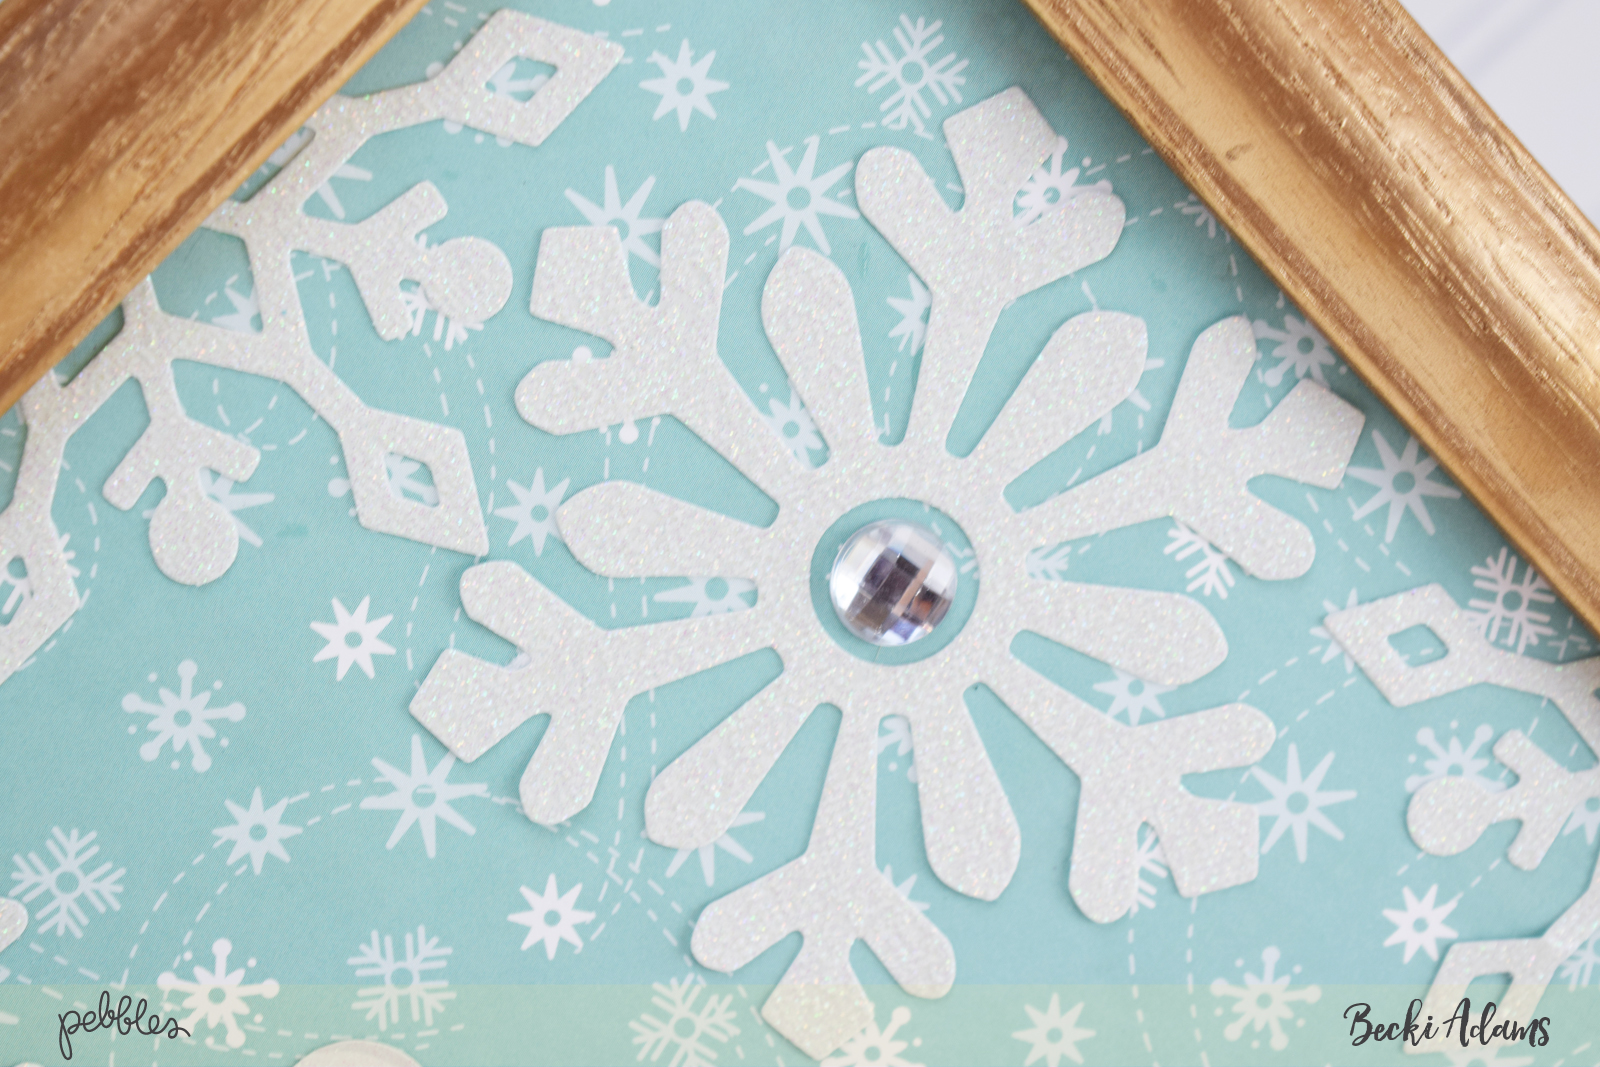 DIY Snowflake Wall Art by @jbckadams for @pebblesinc #madewithPebbles #DIYSnowflakewallart #winterhomedecor